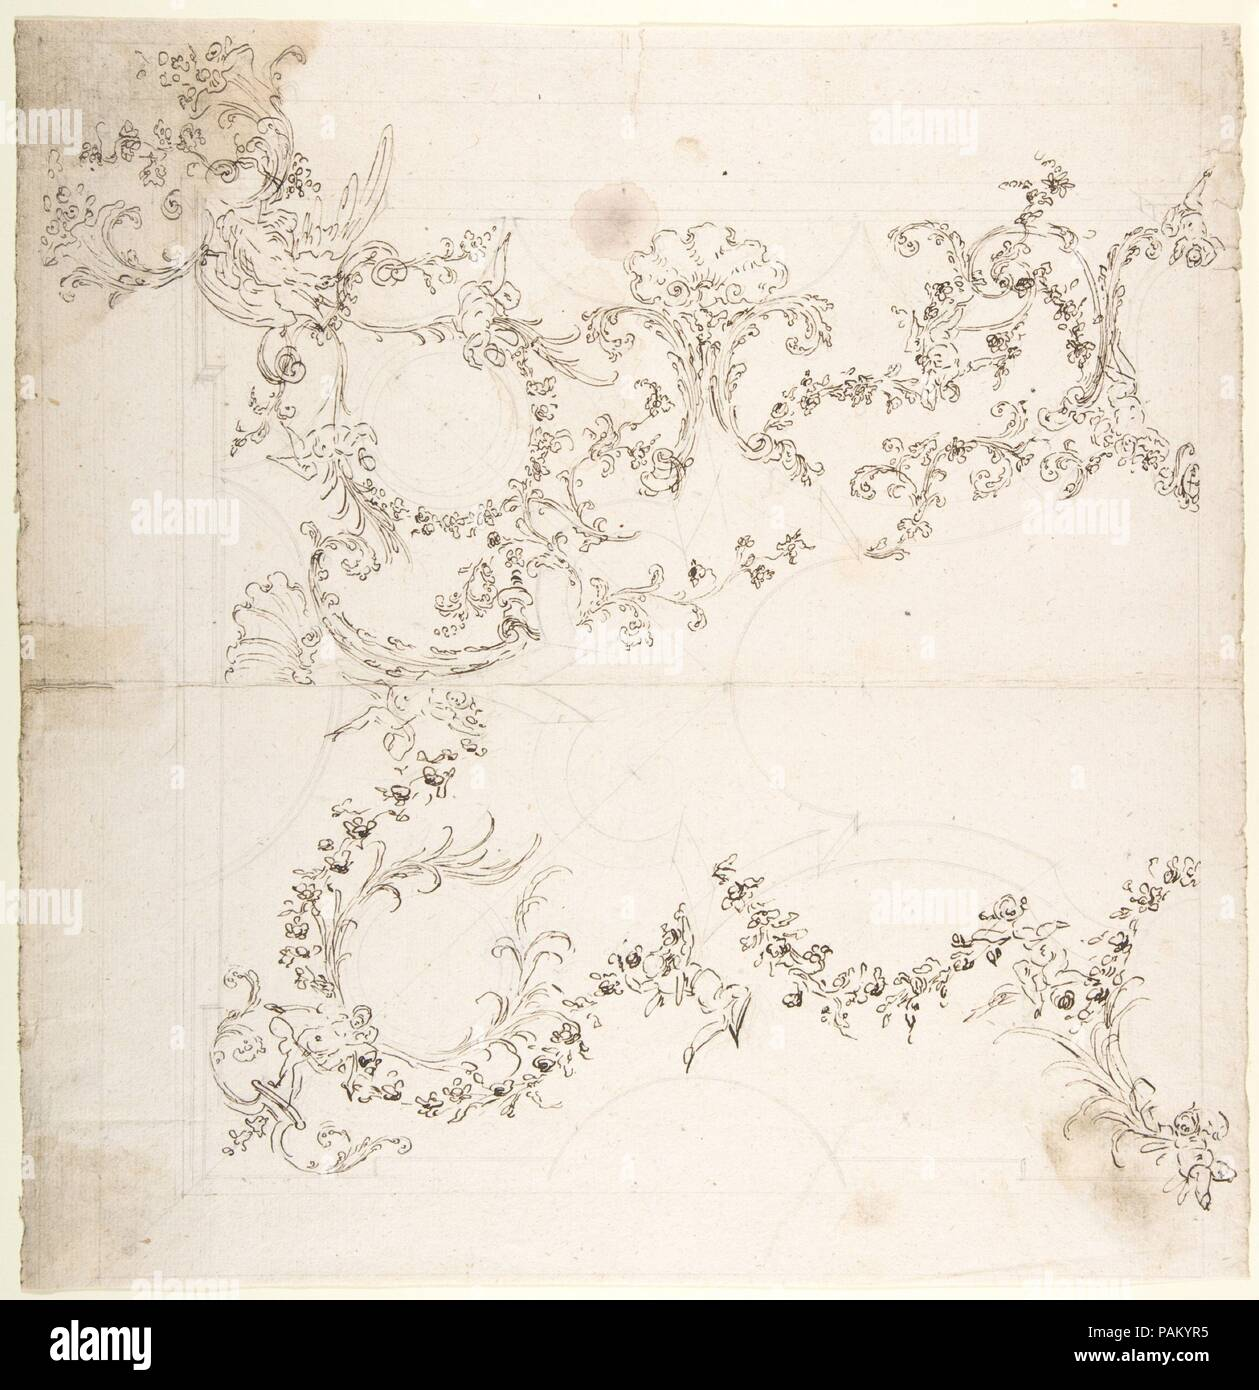 Design for a Ceiling Decoration with Putti and Garland Motifs. Artist: Attributed to Donato Giuseppe Frisoni (Italian, Laino near Como 1683-1735 Ludwigsburg). Dimensions: 13 5/16 x 12 15/16in. (33.8 x 32.8cm). Date: 1709-20. Museum: Metropolitan Museum of Art, New York, USA. - Stock Image